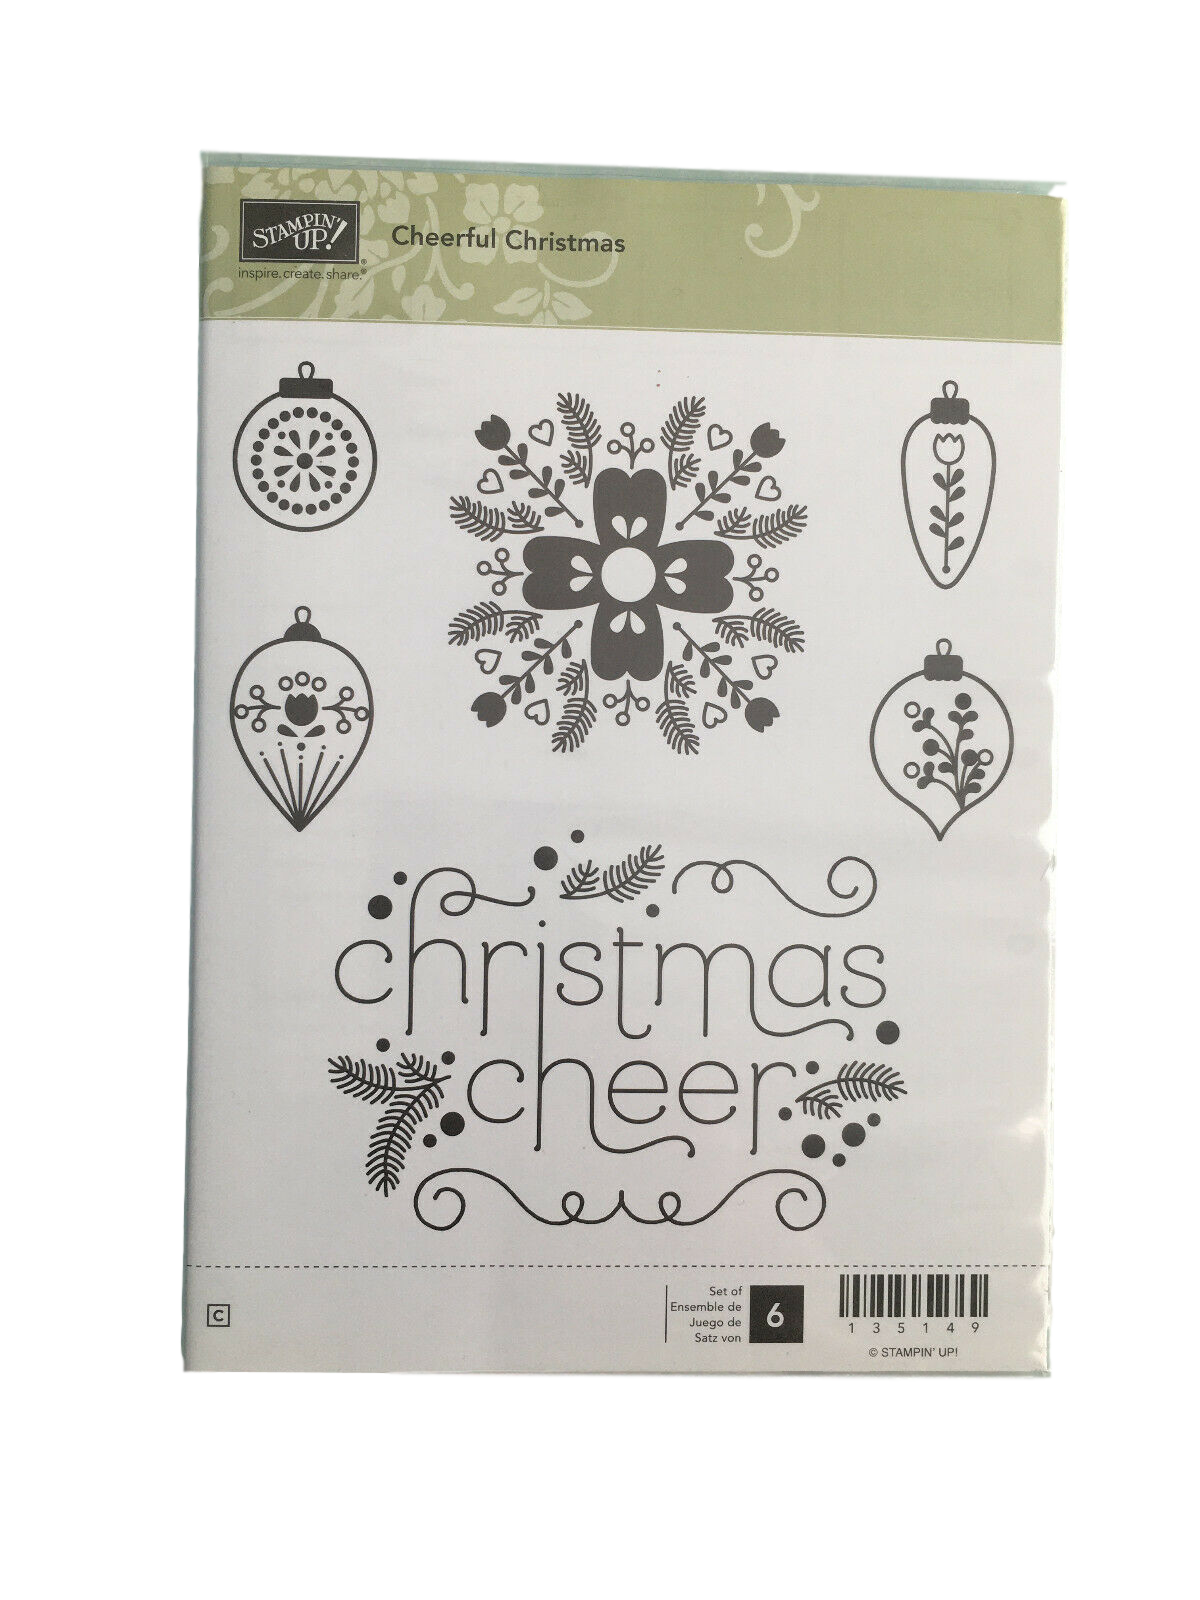 Primary image for Stampin' Up Cheerful Christmas Stamp Set #135149